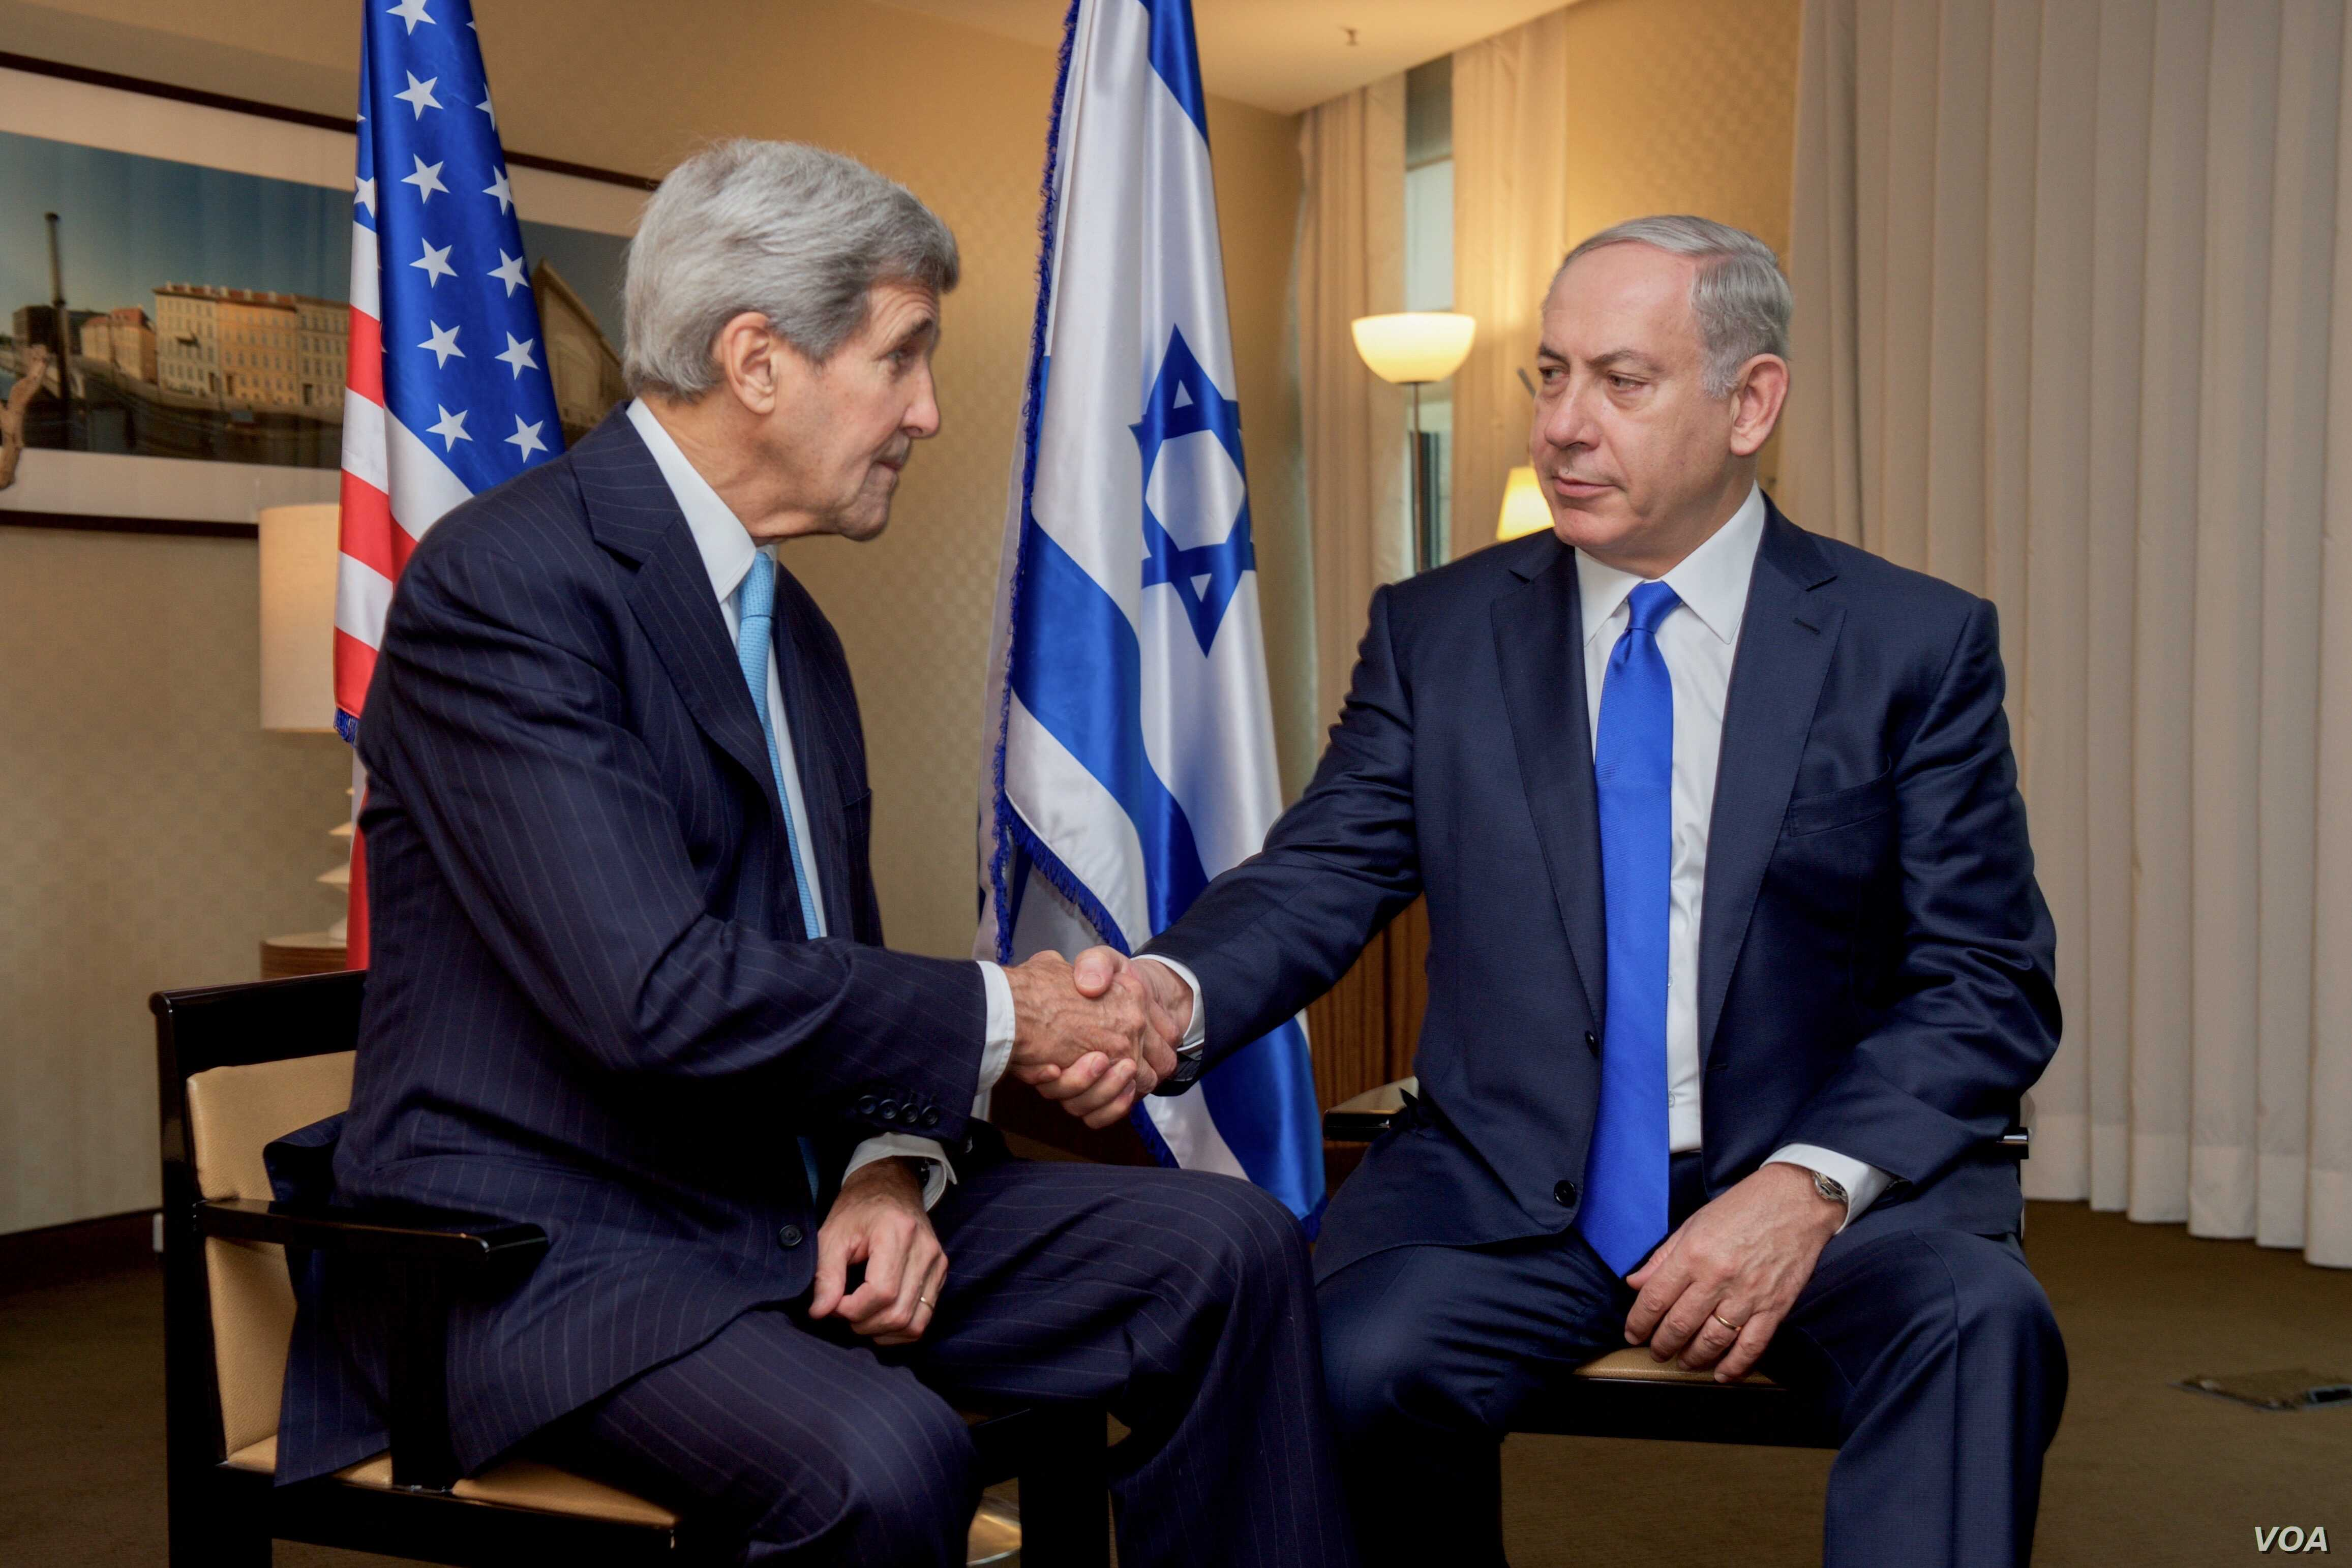 U.S. Secretary of State John Kerry shakes hands with Israeli Prime Minister Benjamin Netanyahu after they address the media before holding a bilateral meeting in Berlin, Germany, Oct. 22, 2015.